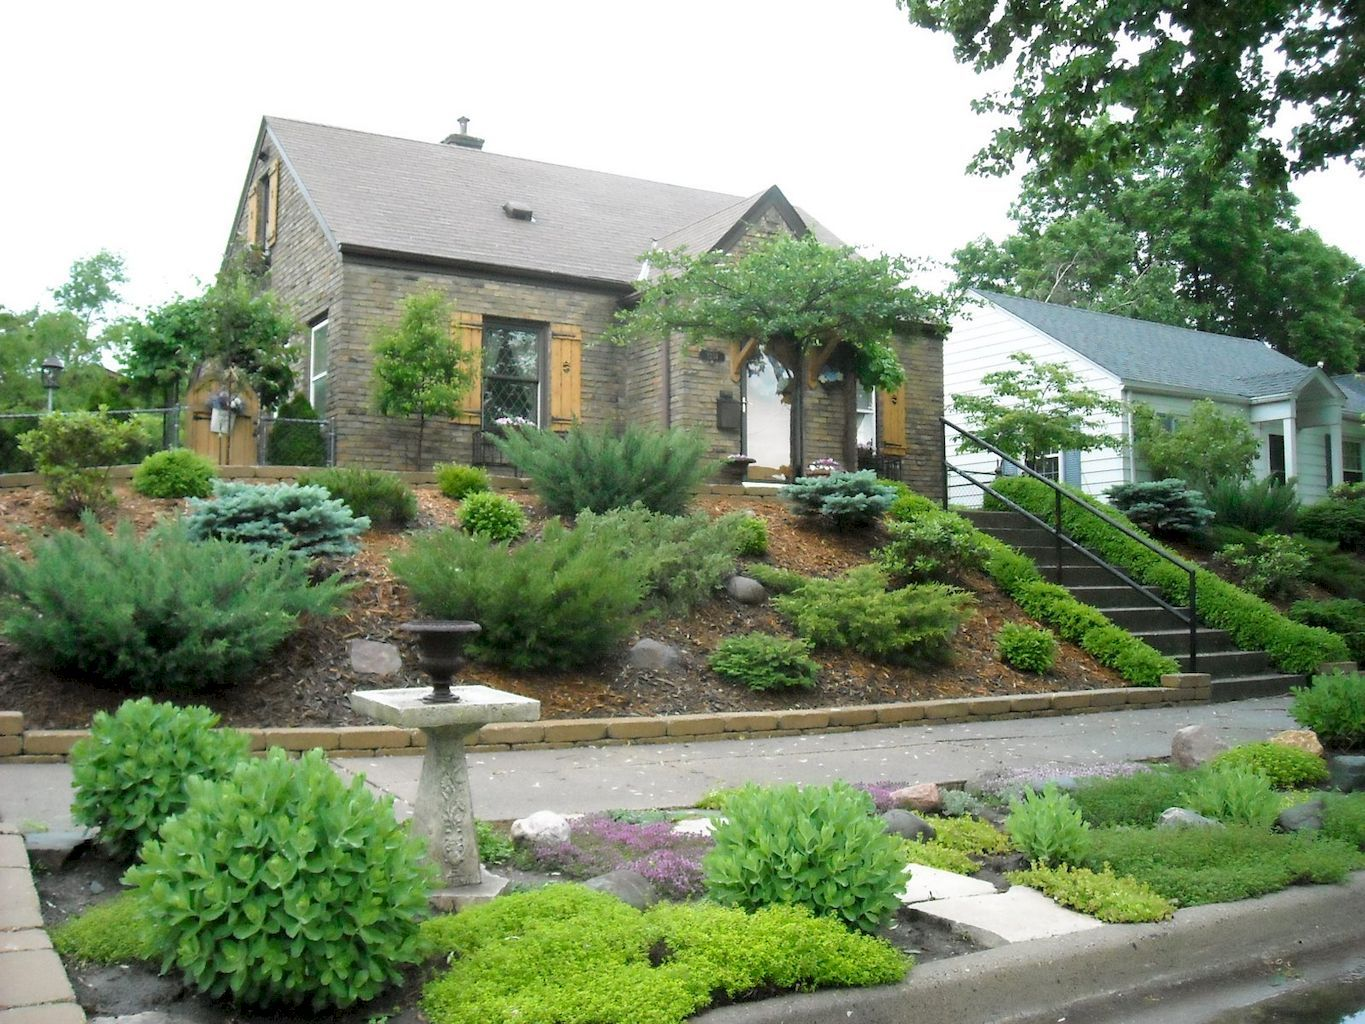 Awesome 52 Green And Elegant Front Yard Landscaping Ideas Https Buildecor Co